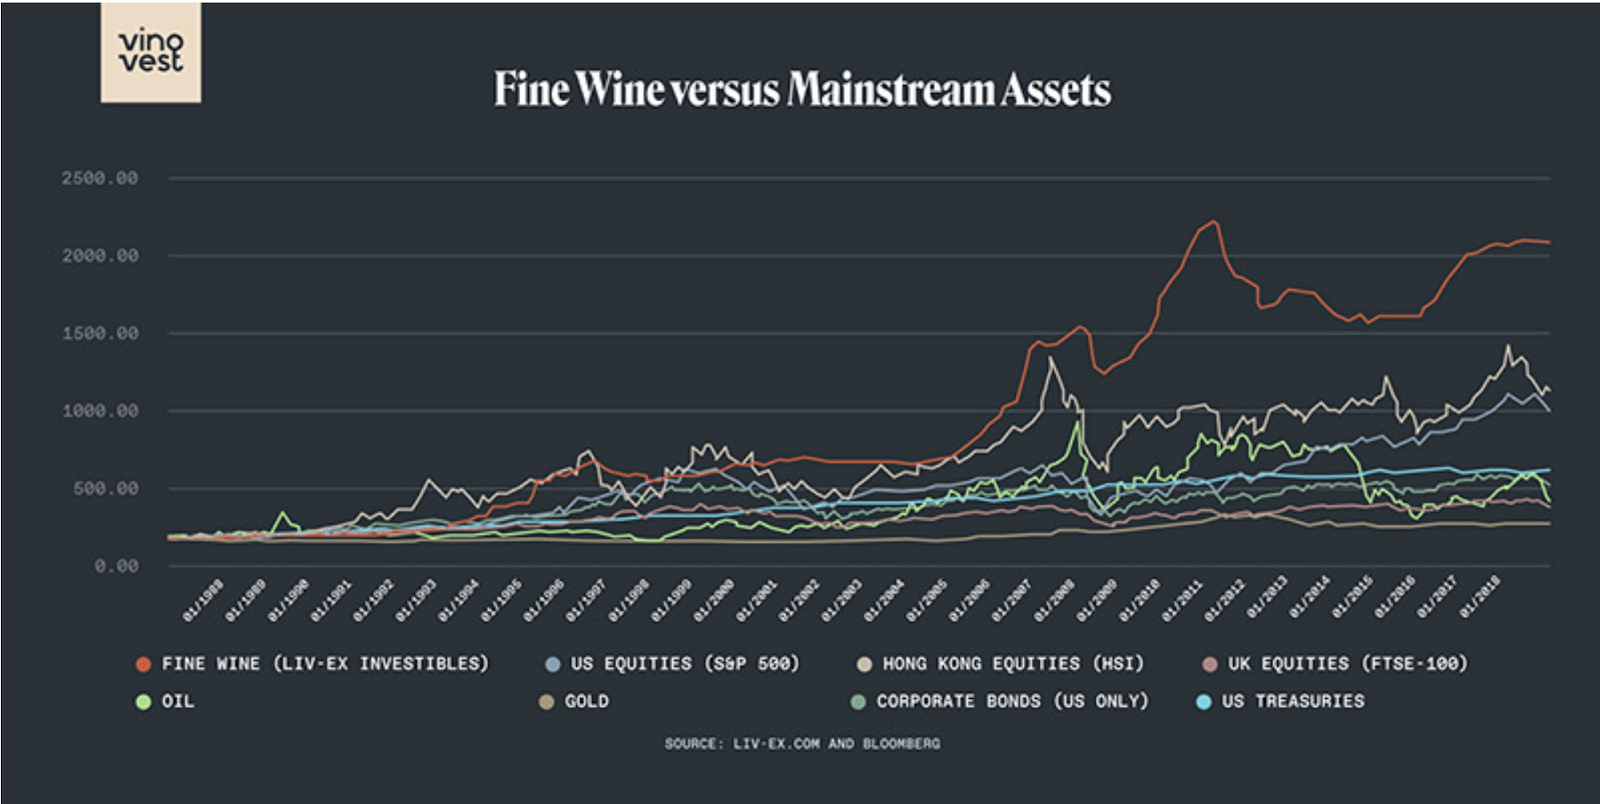 Portfolio diversification through alternative investments - fine wine